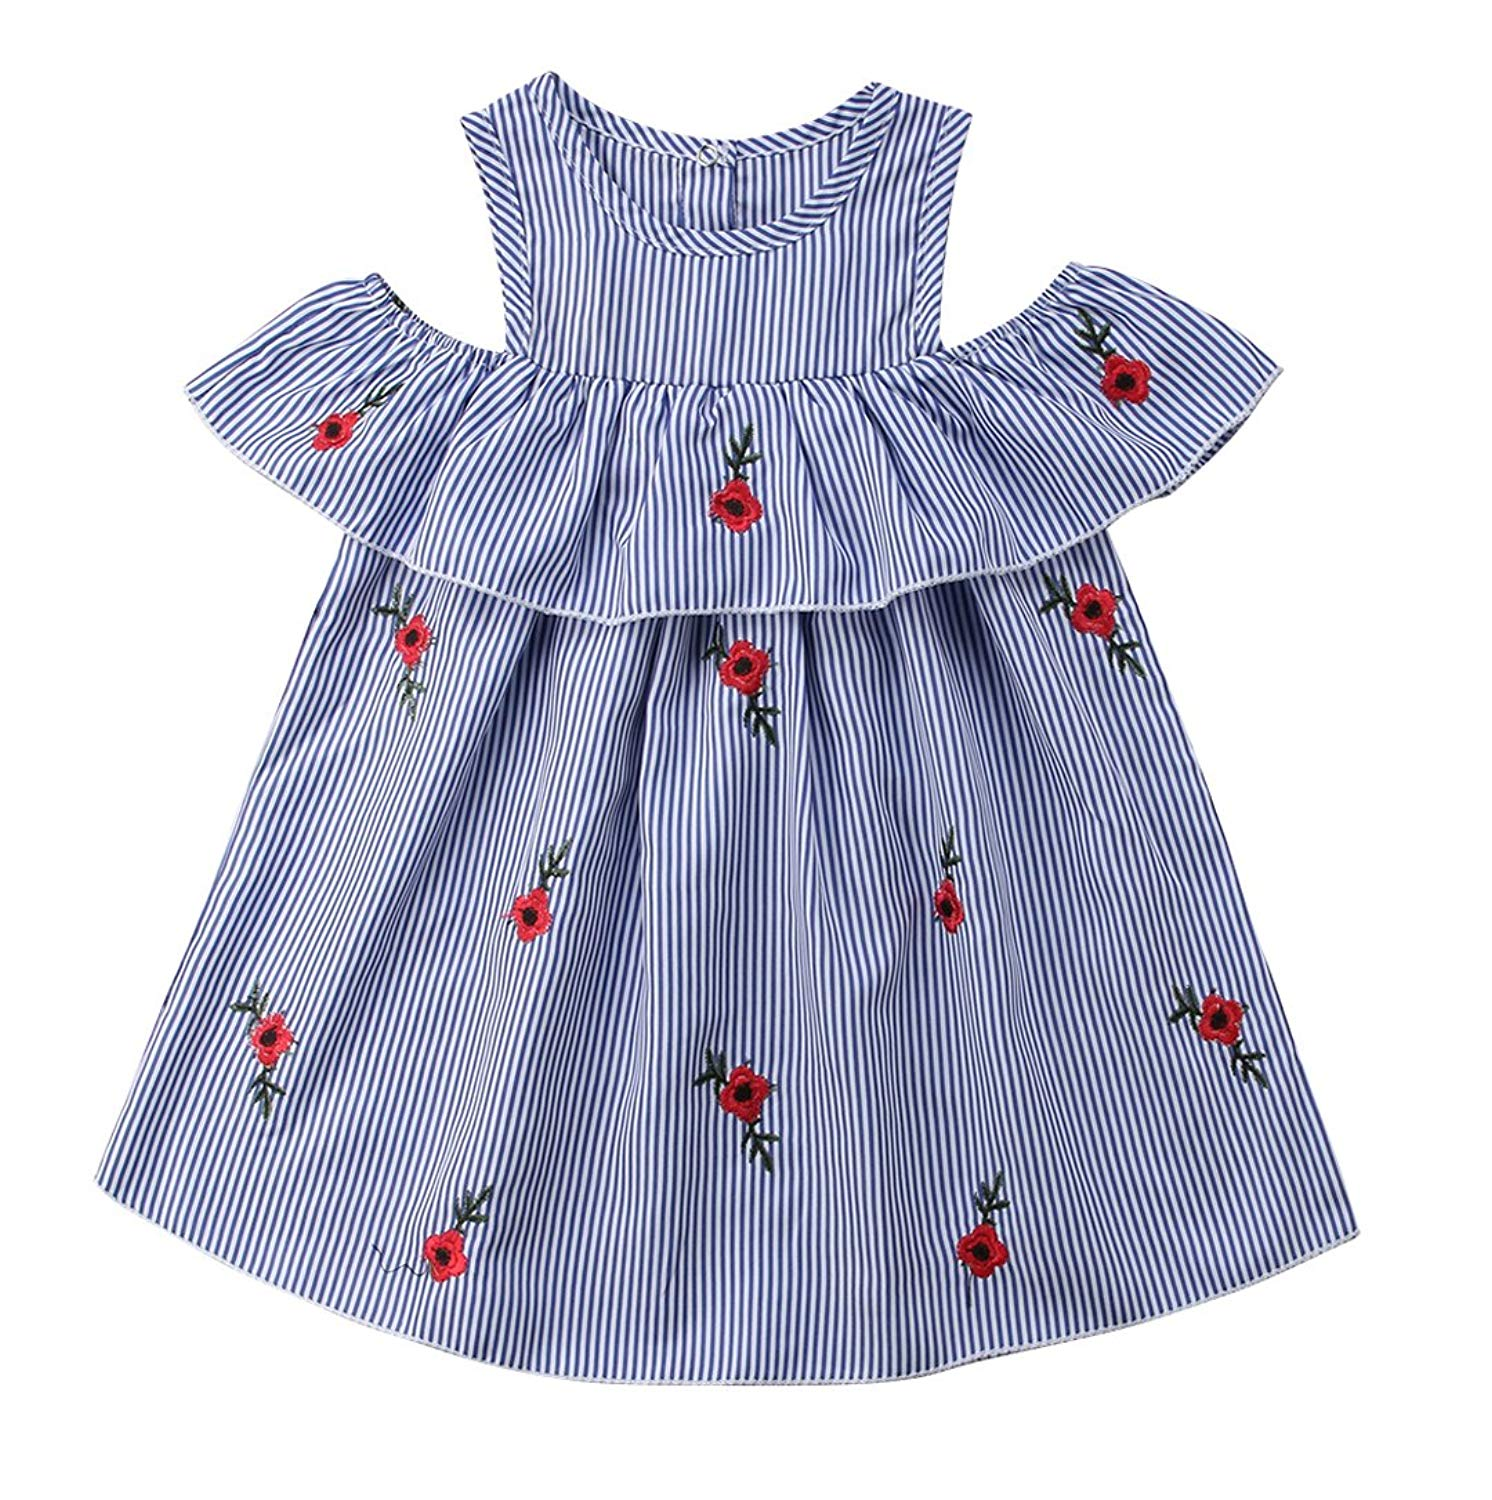 4f5694ca94a5 Buy Faithtur 2-7 Years Toddler Girls Striped Dress